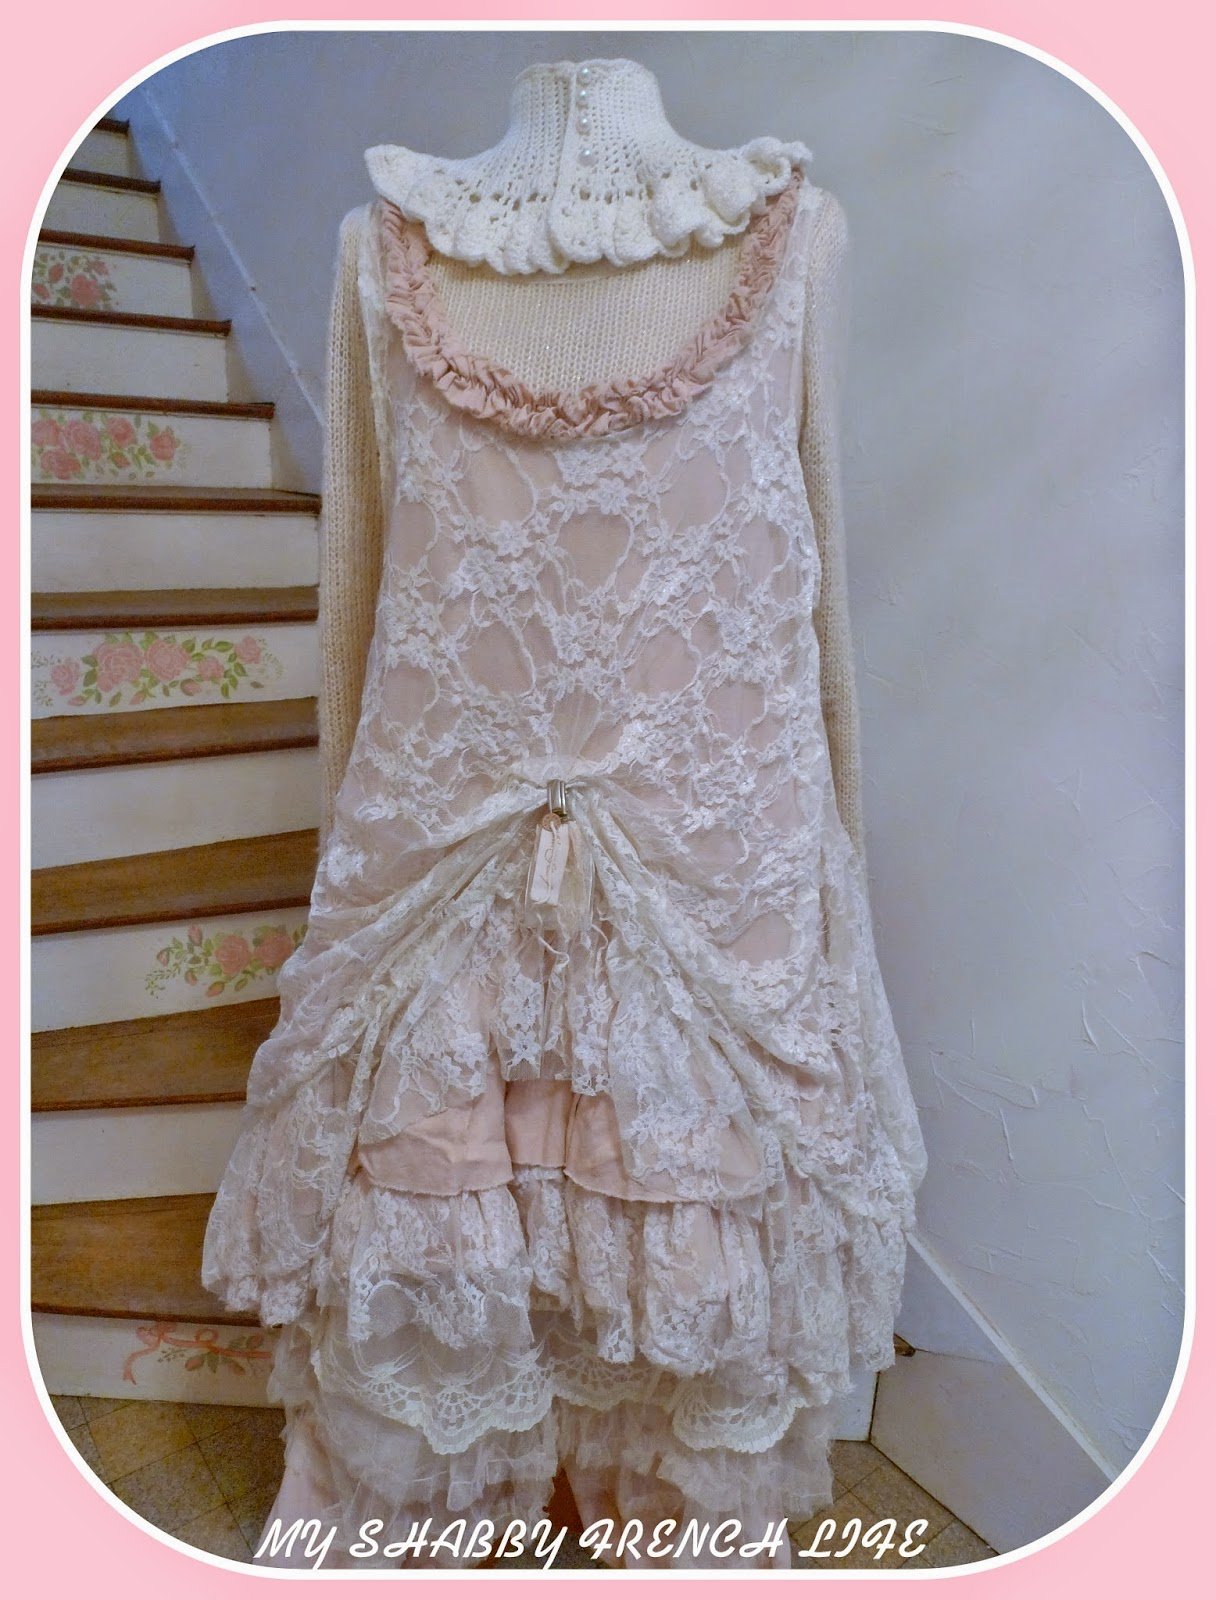 My shabby french life tenue shabby du jour sur un air for Tenue shabby chic